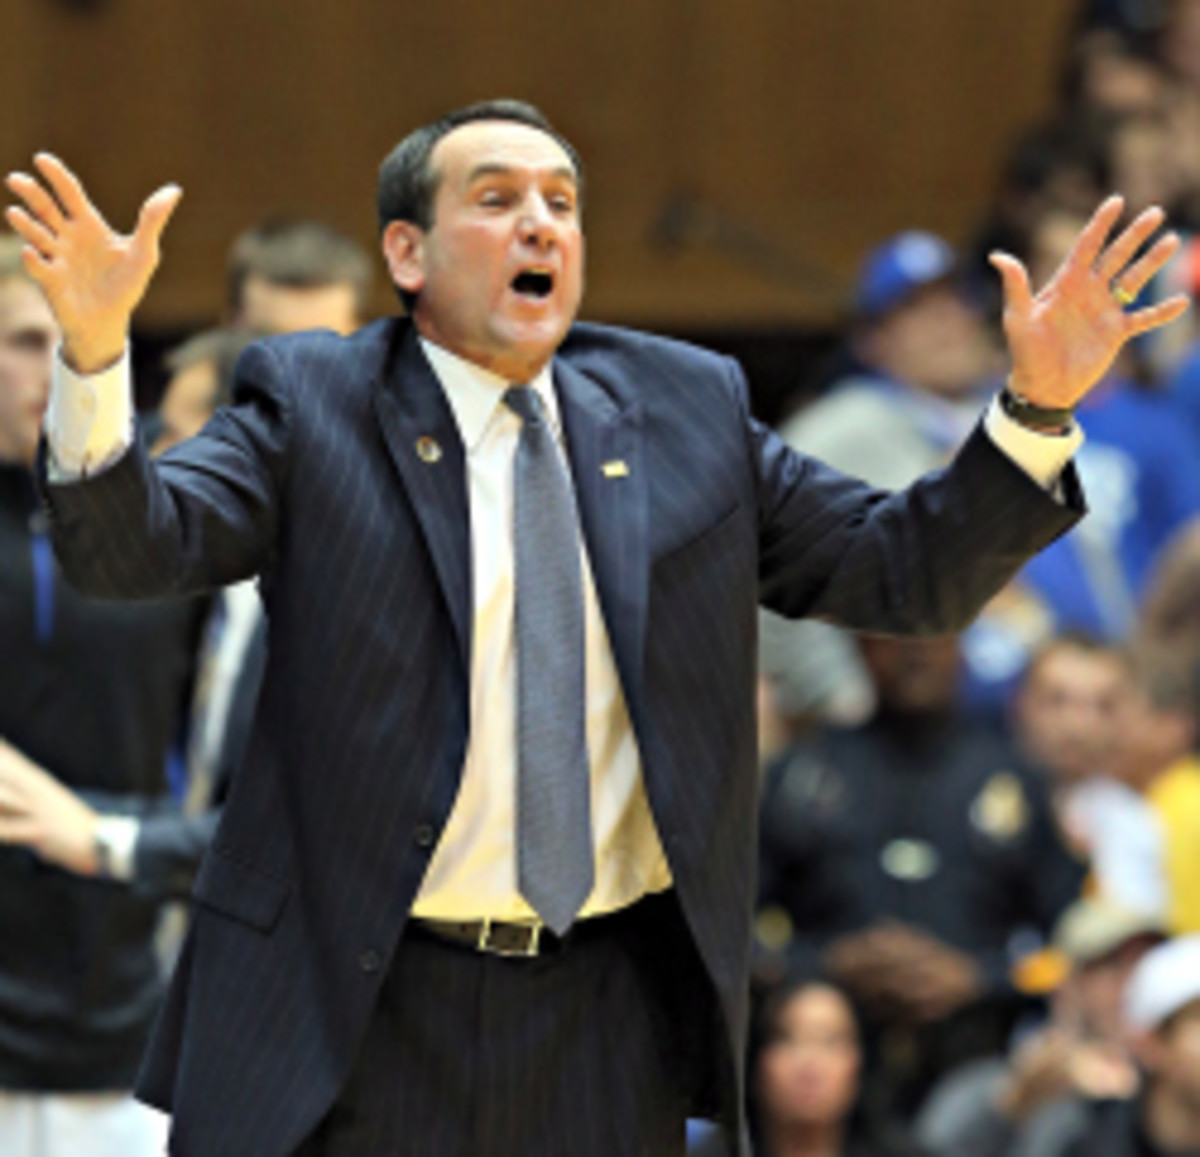 Mike Krzyzewski will not return to coach USA Basketball at the World Championship. A successor will likely be named this summer. (Streeter Lecka/Getty Images)